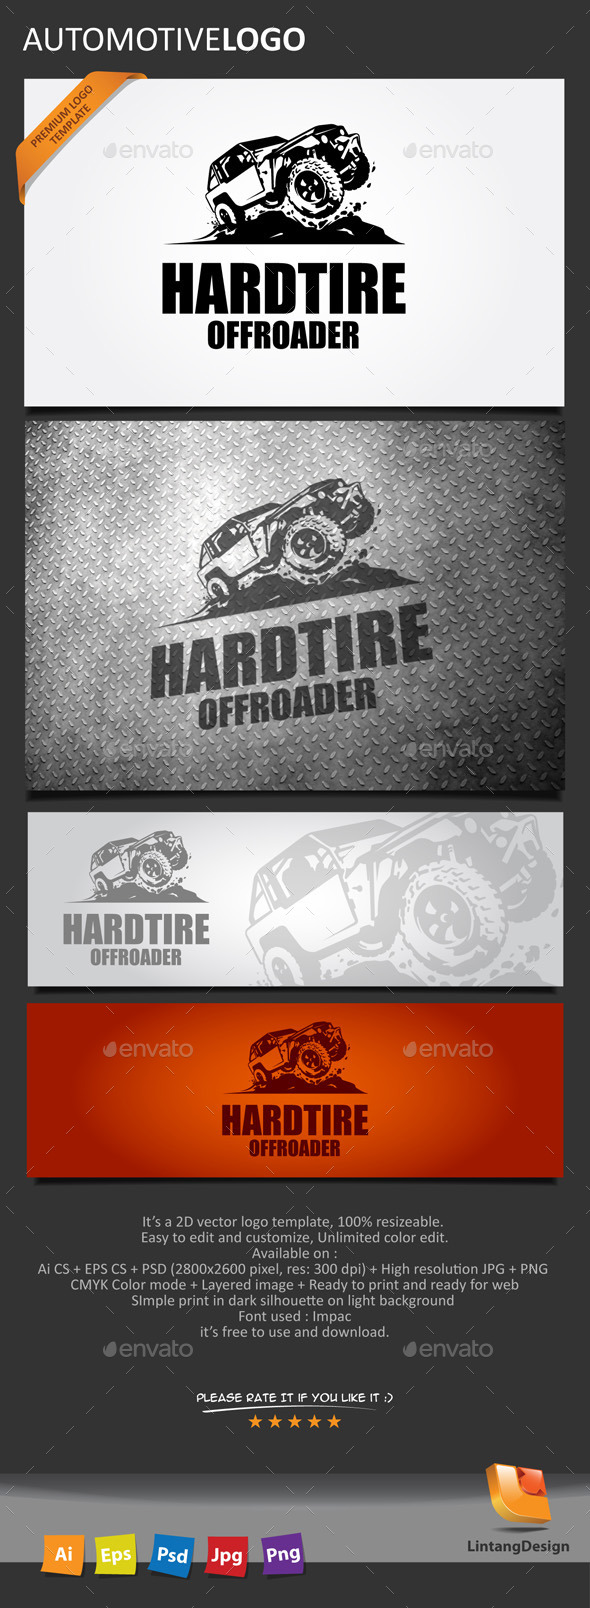 GraphicRiver Automotive Logo 10421857